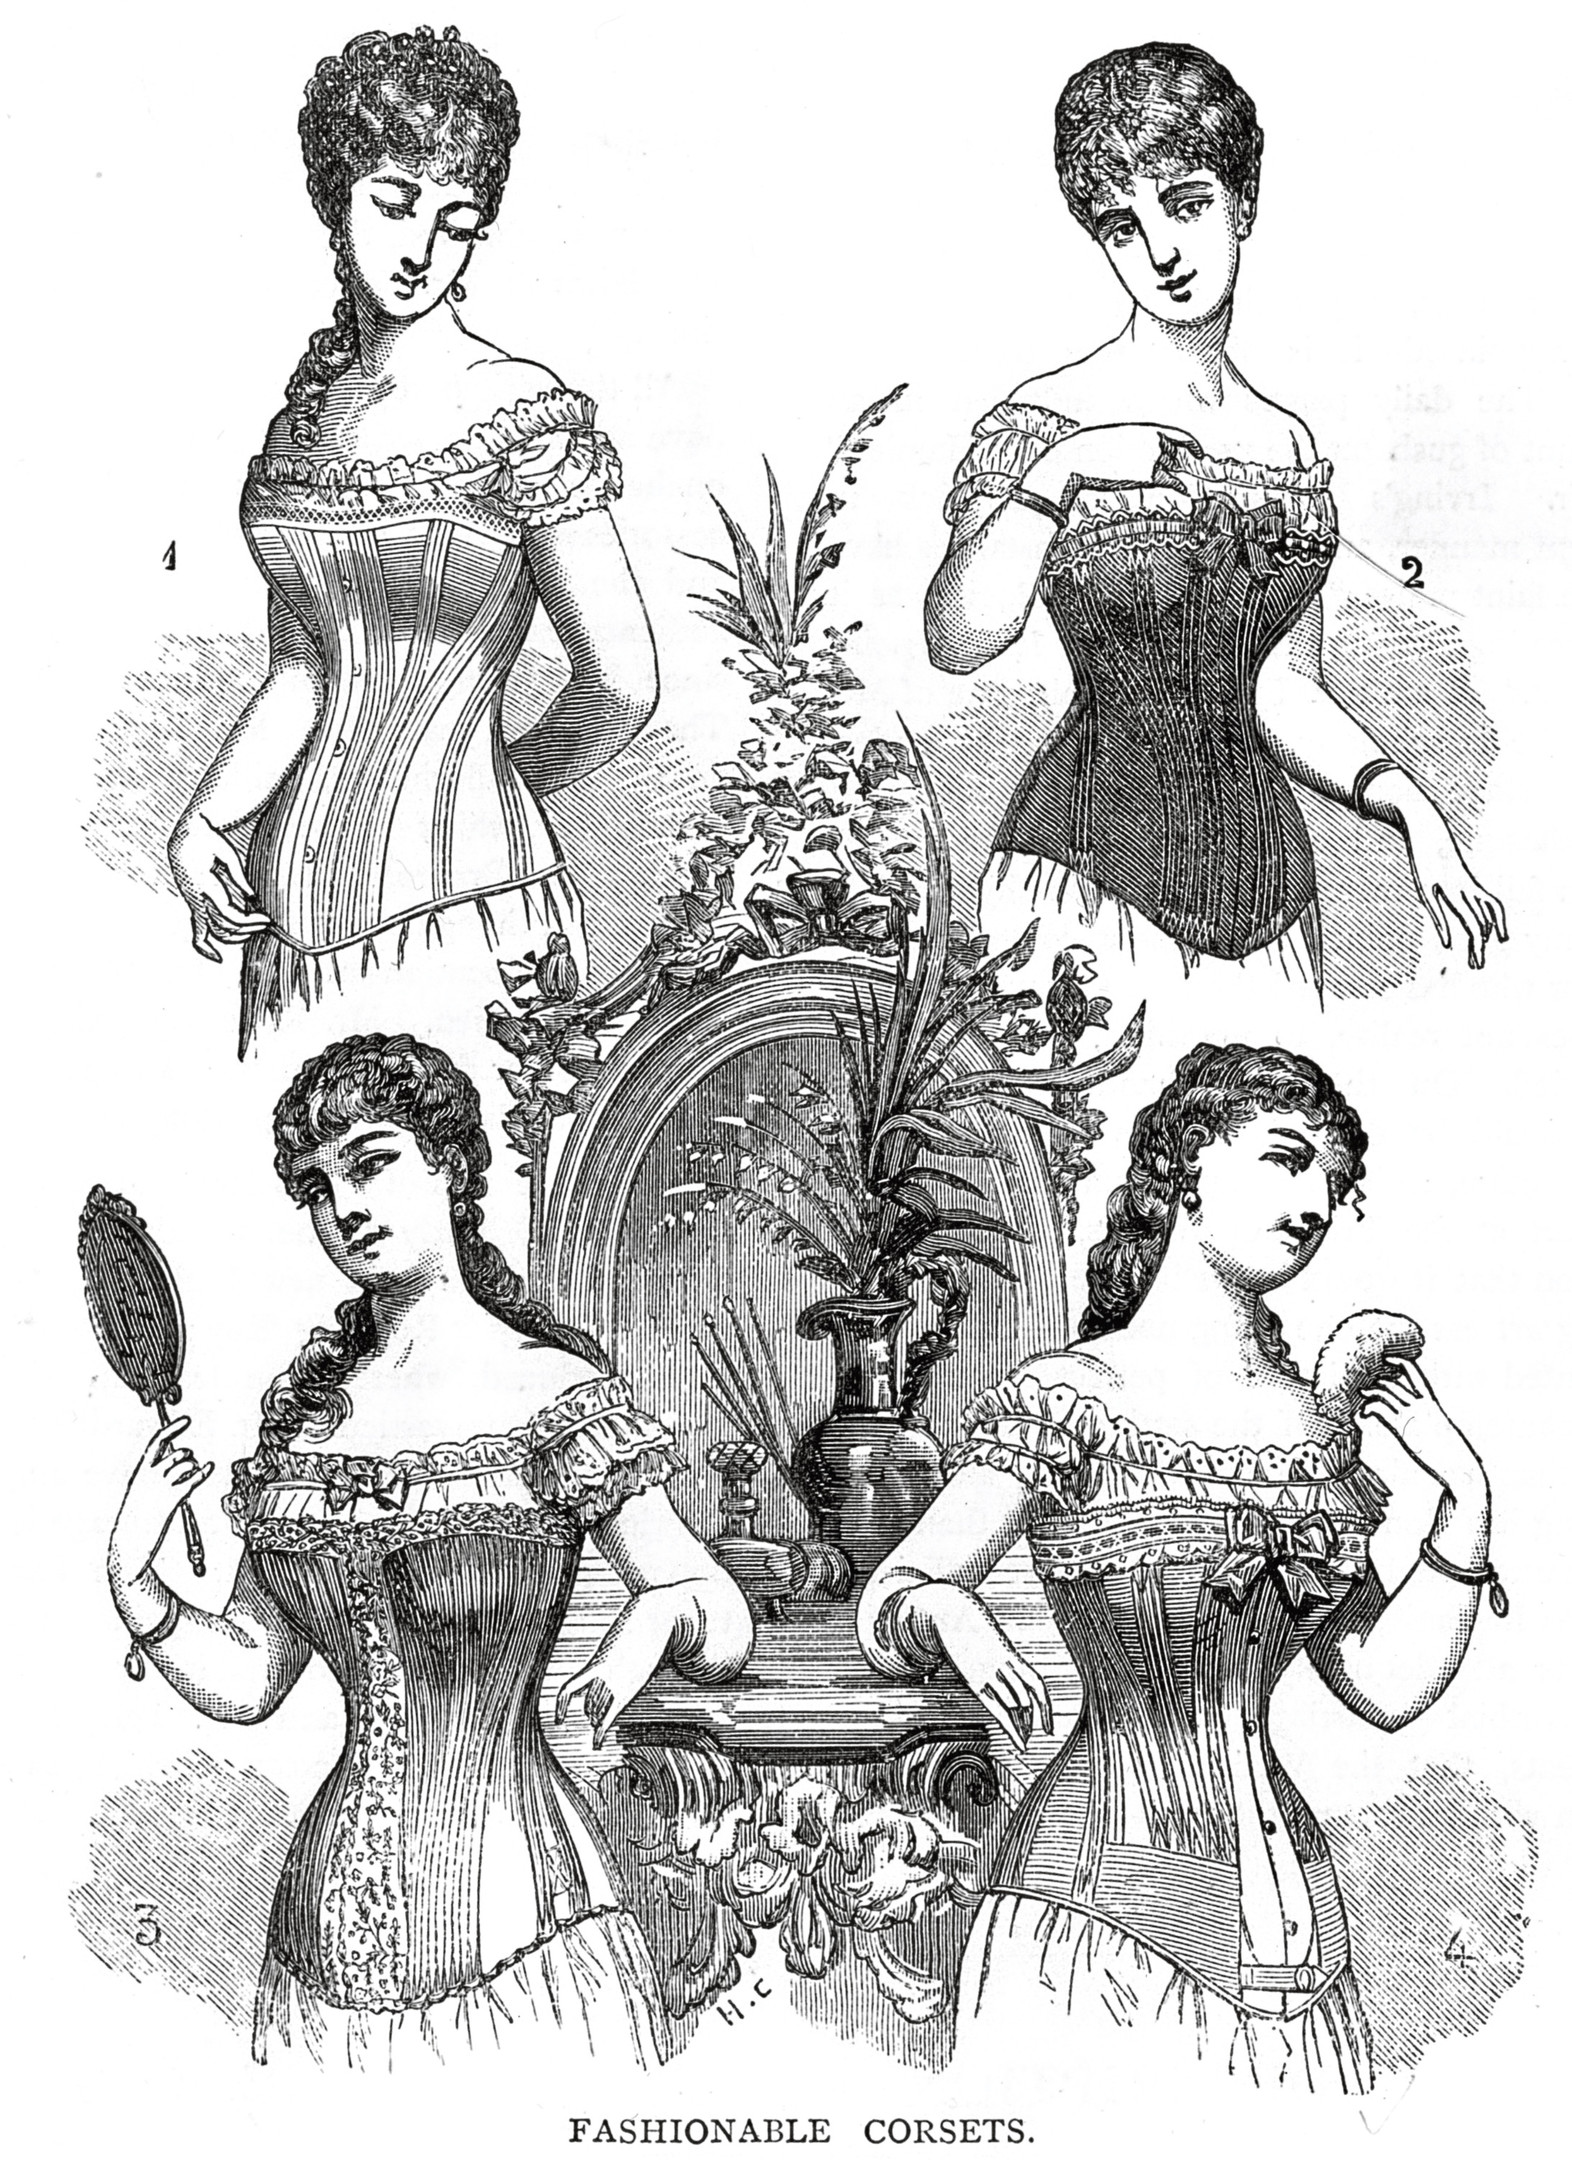 circa 1870: Four Victorian ladies modelling the whalebone corsets which were fashionable in the 19th century. (Photo by Hulton Archive/Getty Images)